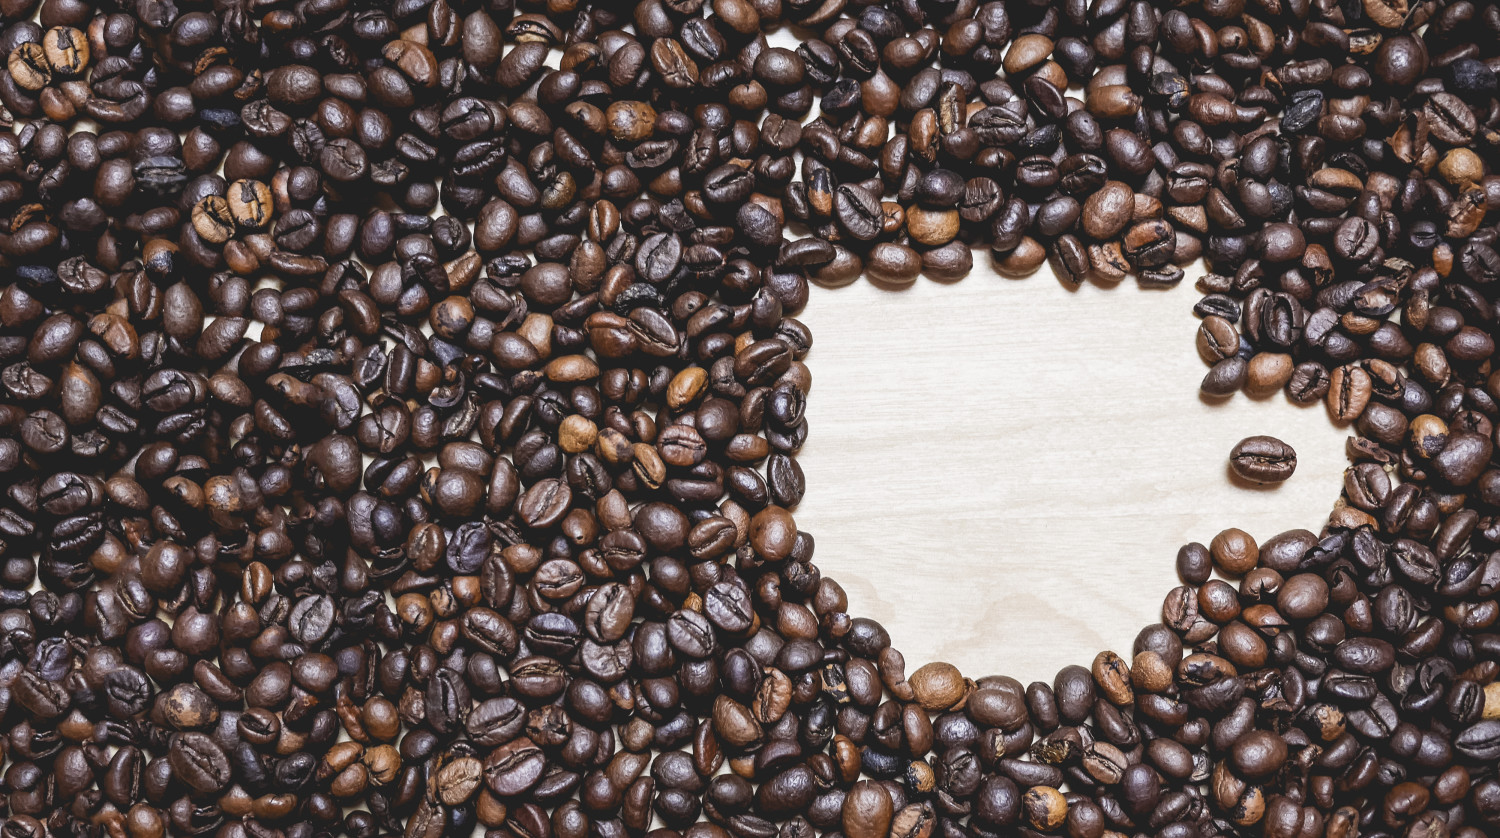 coffee-cup-shape-in-coffee-beans-picjumbo-com